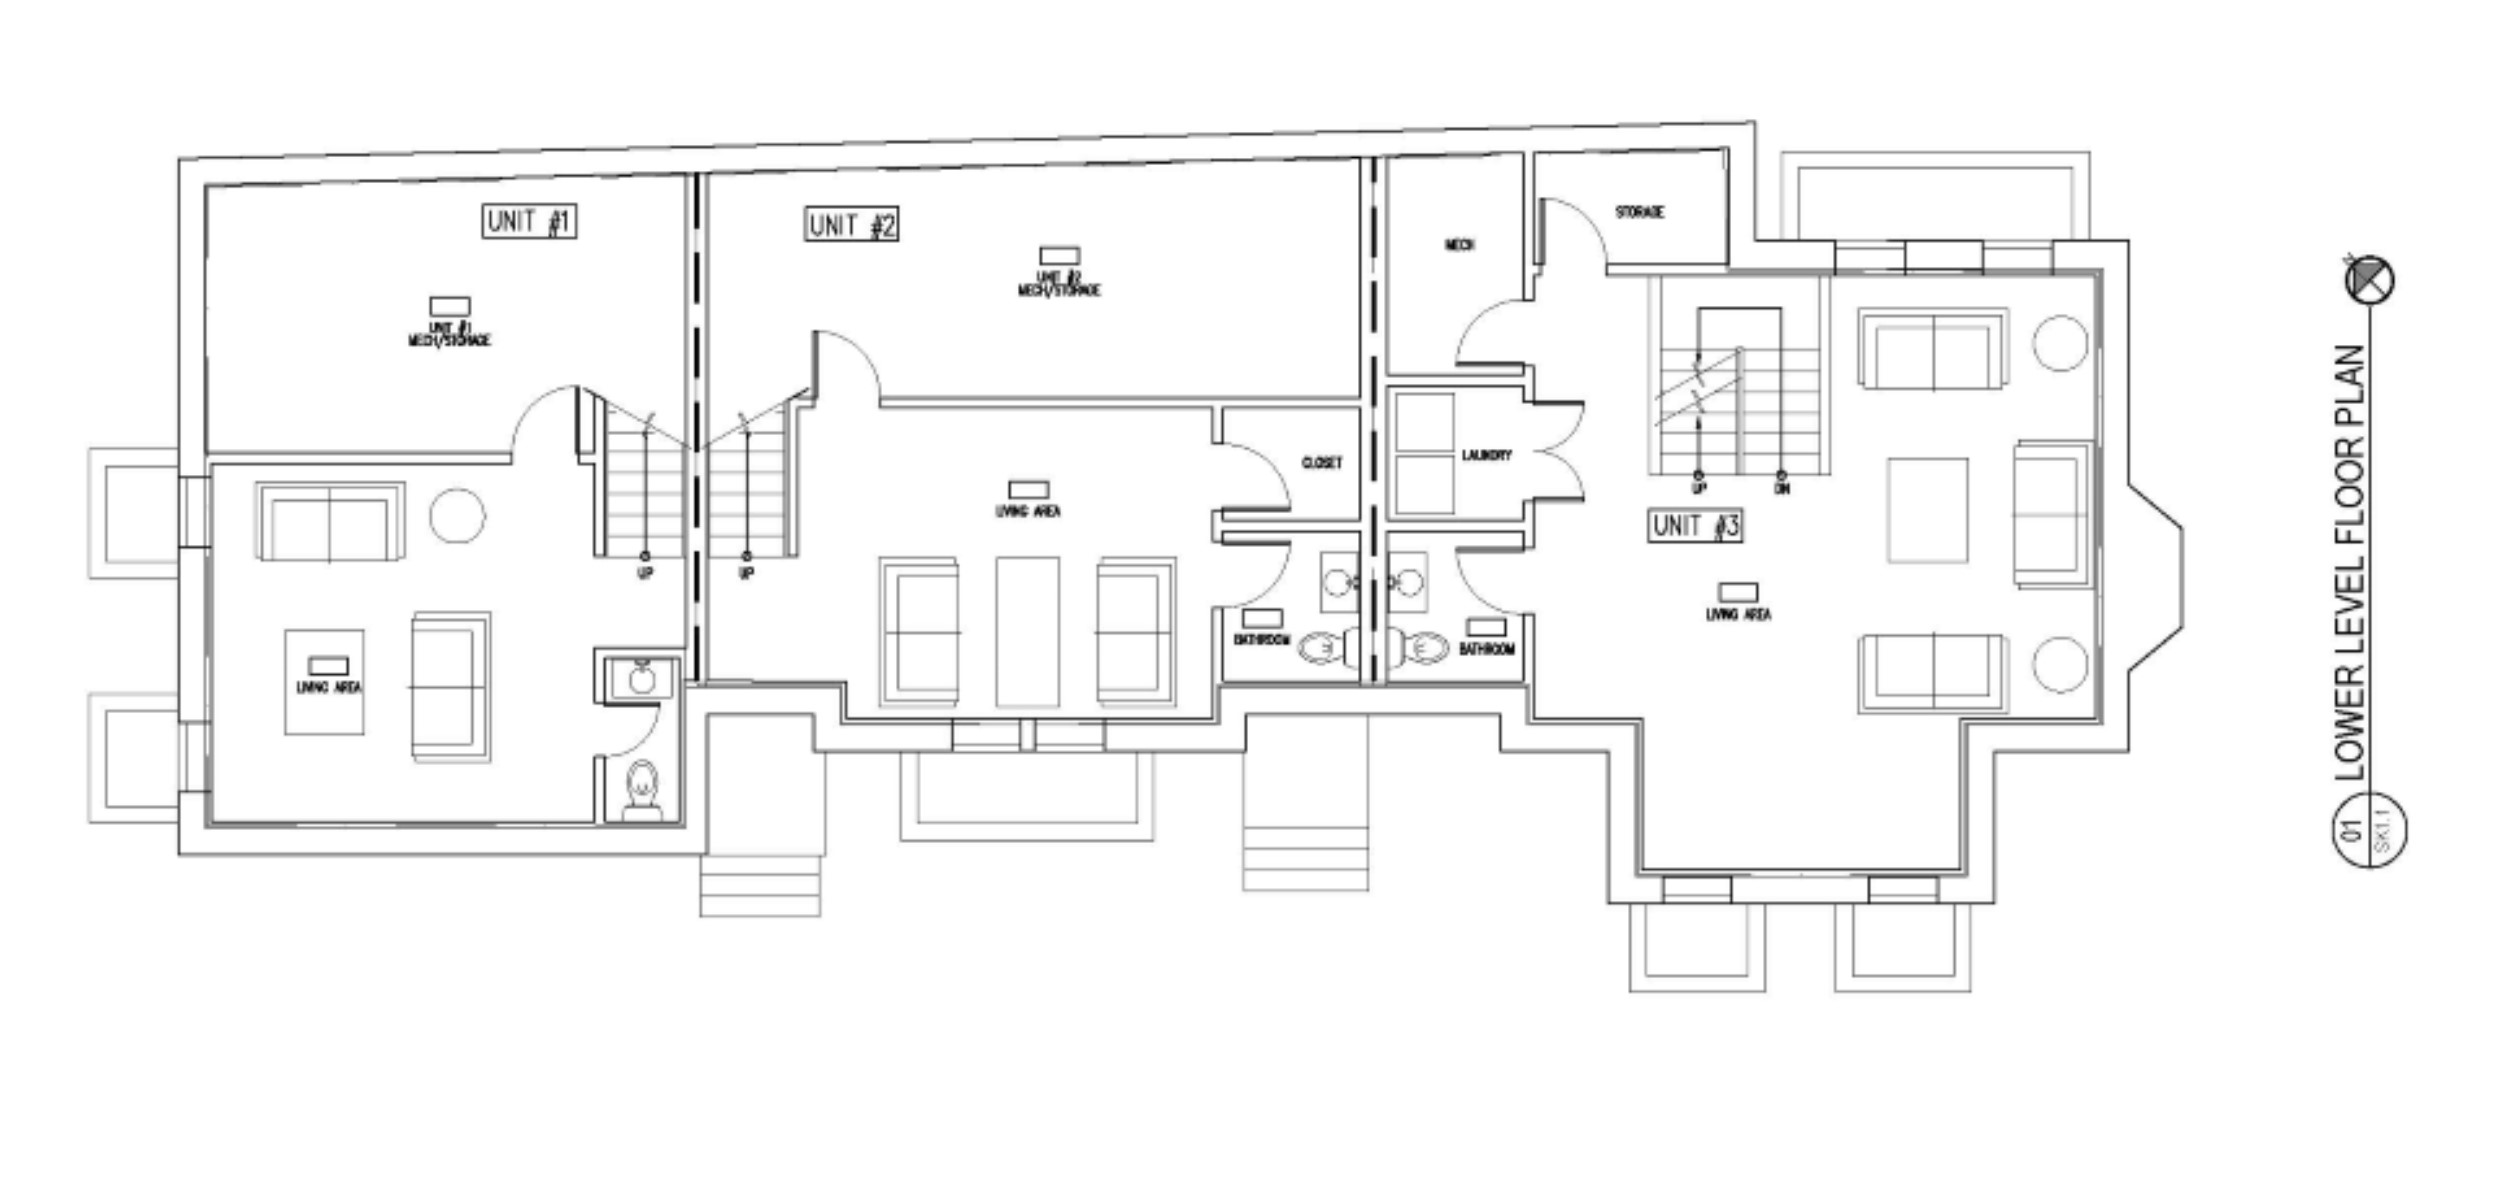 LOWER LEVEL FLOOR PLANS AT 75 RUSH ST IN SOMERVILLE